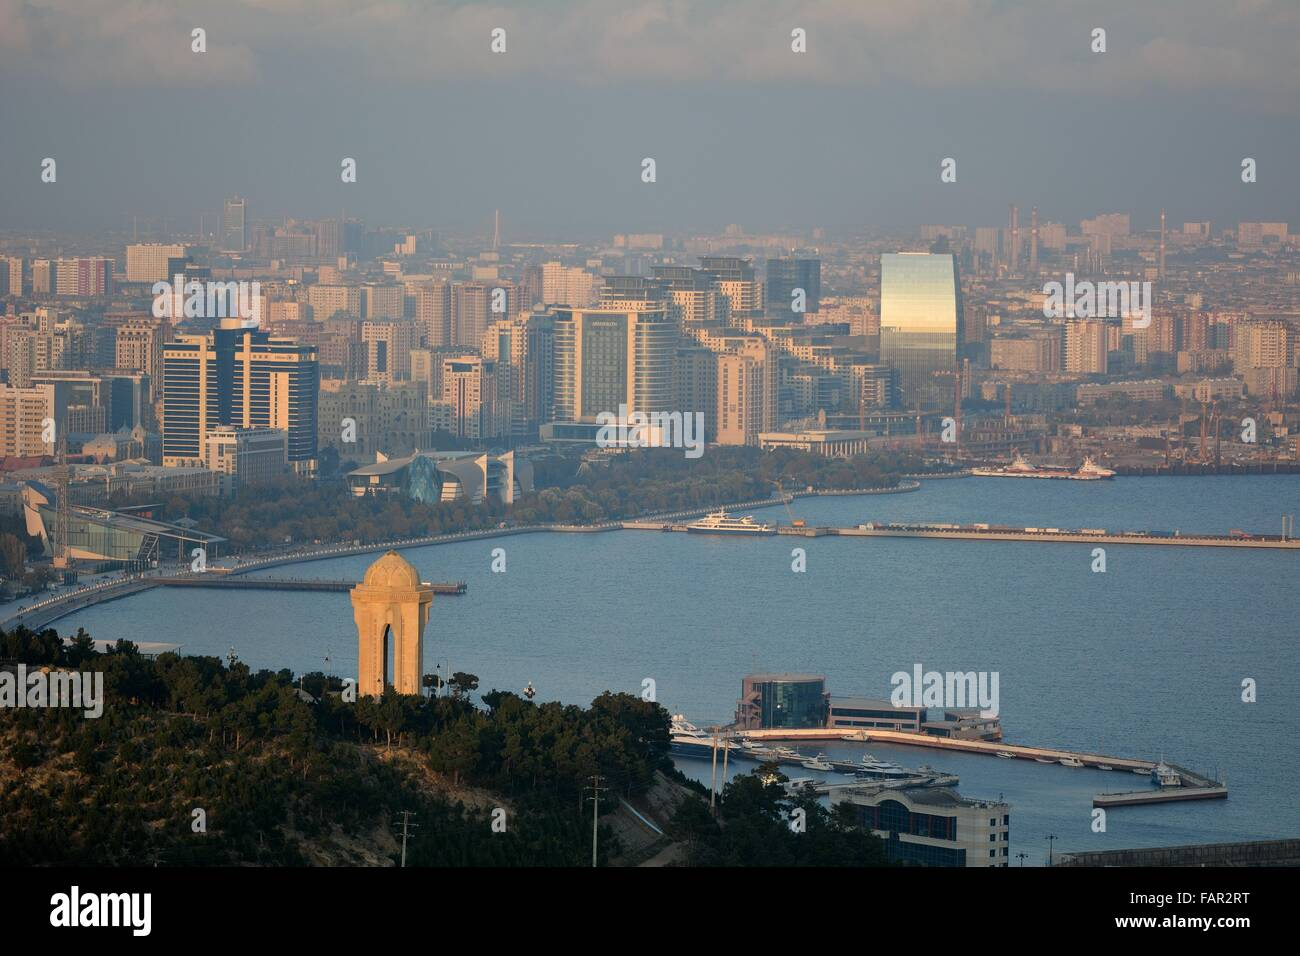 View over Baku, Azerbaijan, and the Caspian Sea, in sunshine with haze showing the 20th January monument in foreground. Stock Photo